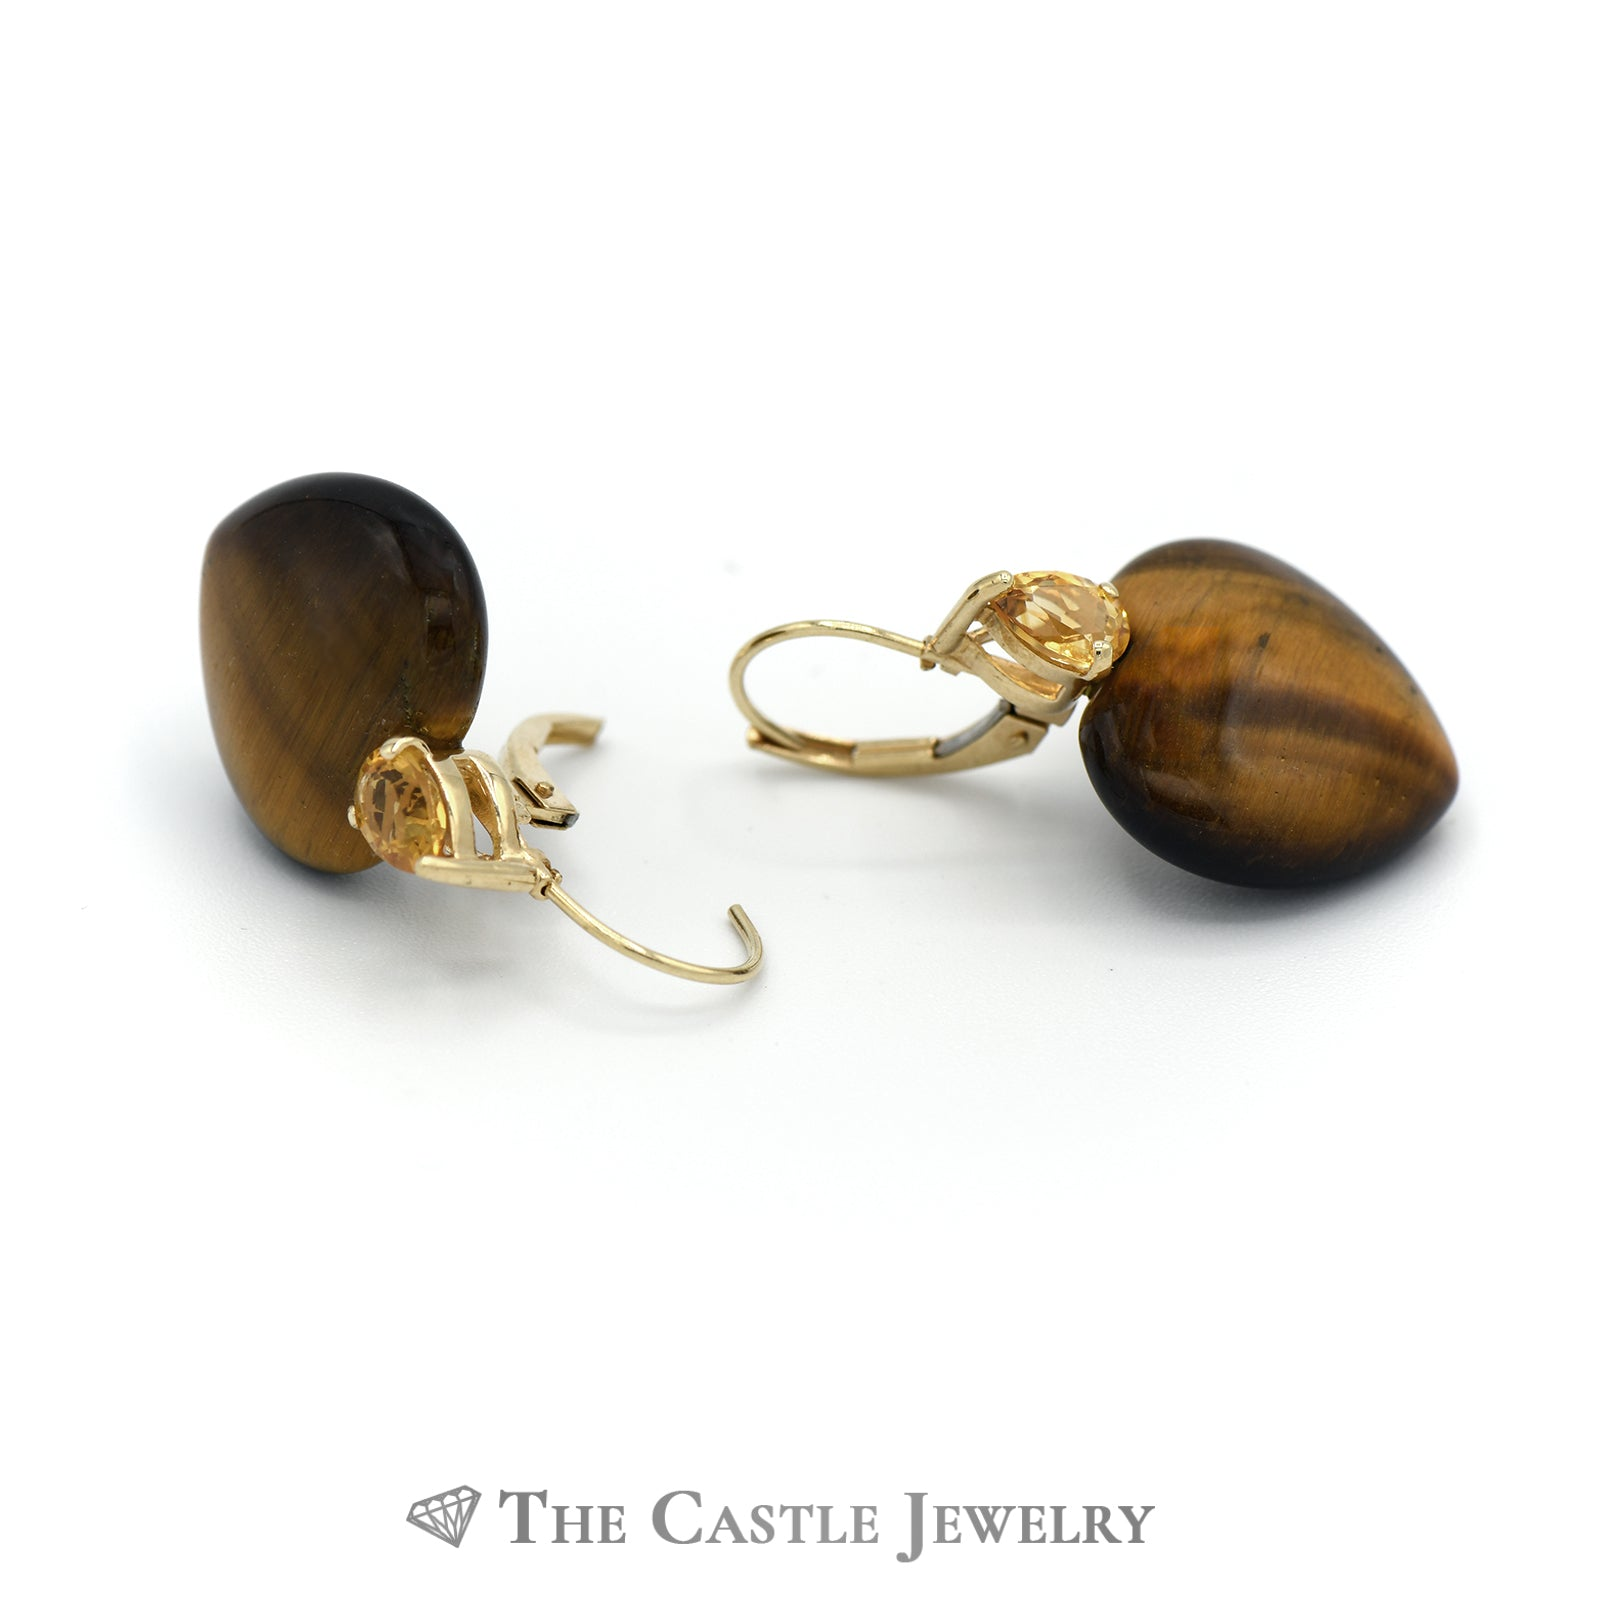 Tigers Eye Heart Earrings with Citrine Accents in 14K Yellow Gold-1